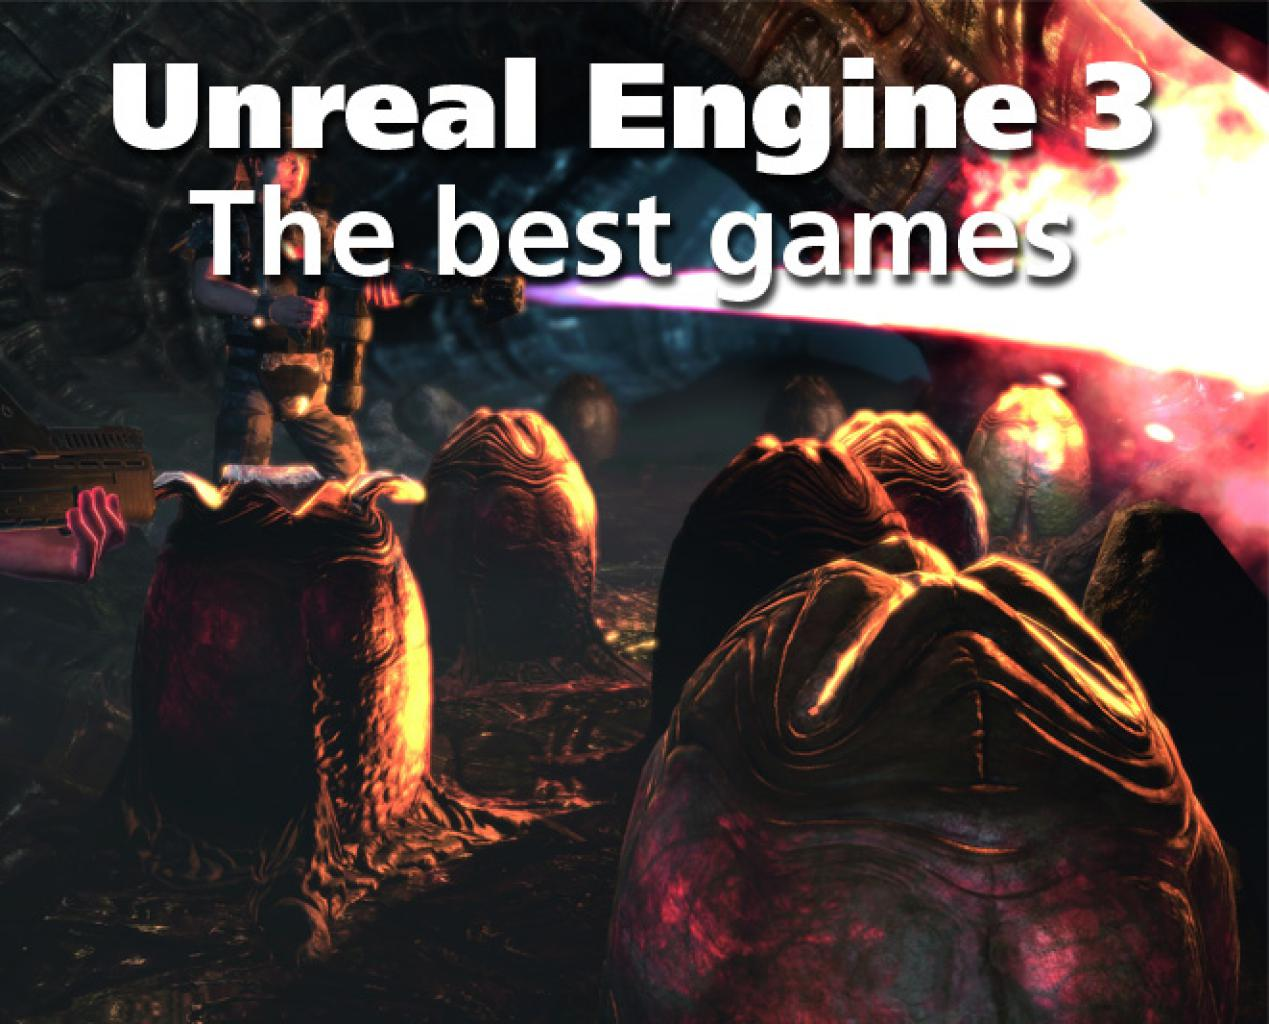 [11/06/08] Although it is often criticized, the Unreal Engine 3 is the technical foundation of many games. PCGH filed through the archives to present some of the most interesting games. At <a href=